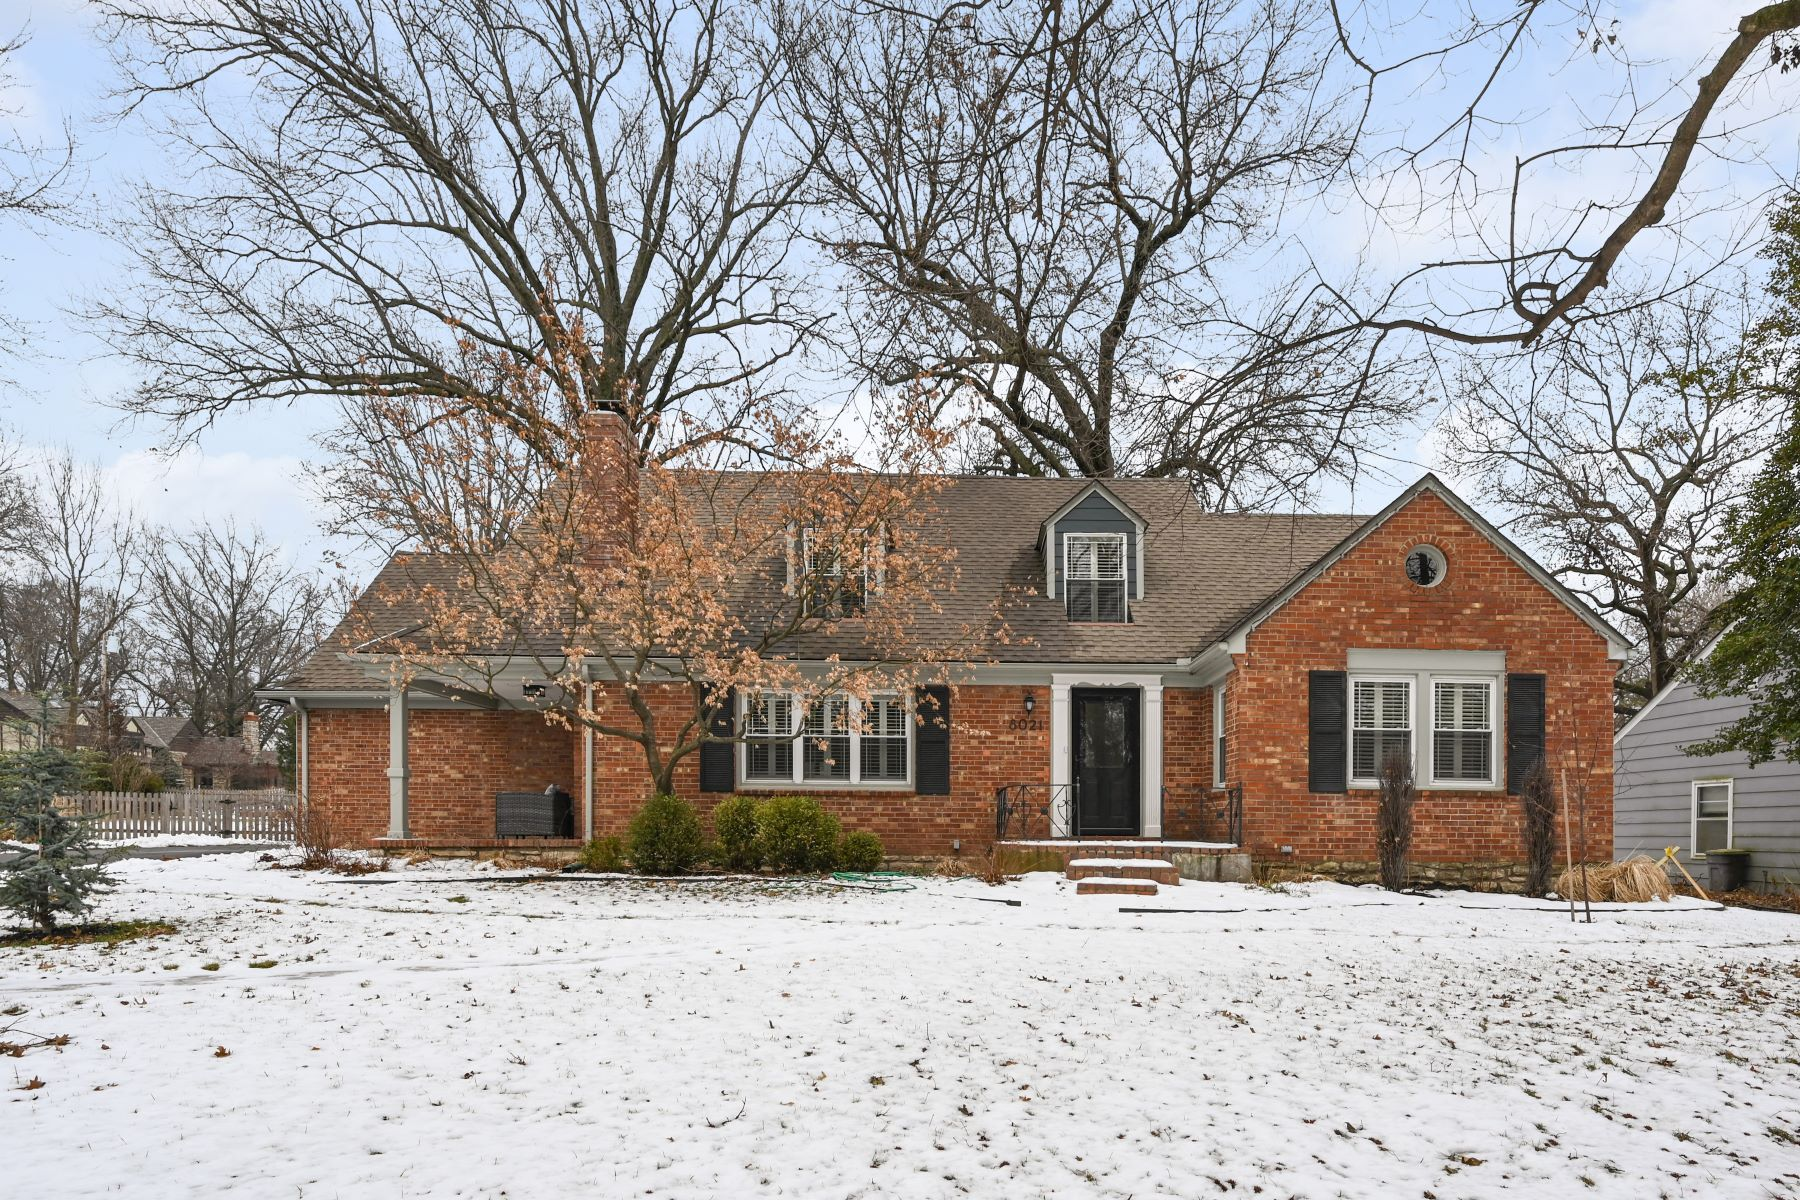 Single Family Homes for Active at Charming Brick Cape Cod in Old Leawood 8021 Lee Boulevard Leawood, Kansas 66206 United States